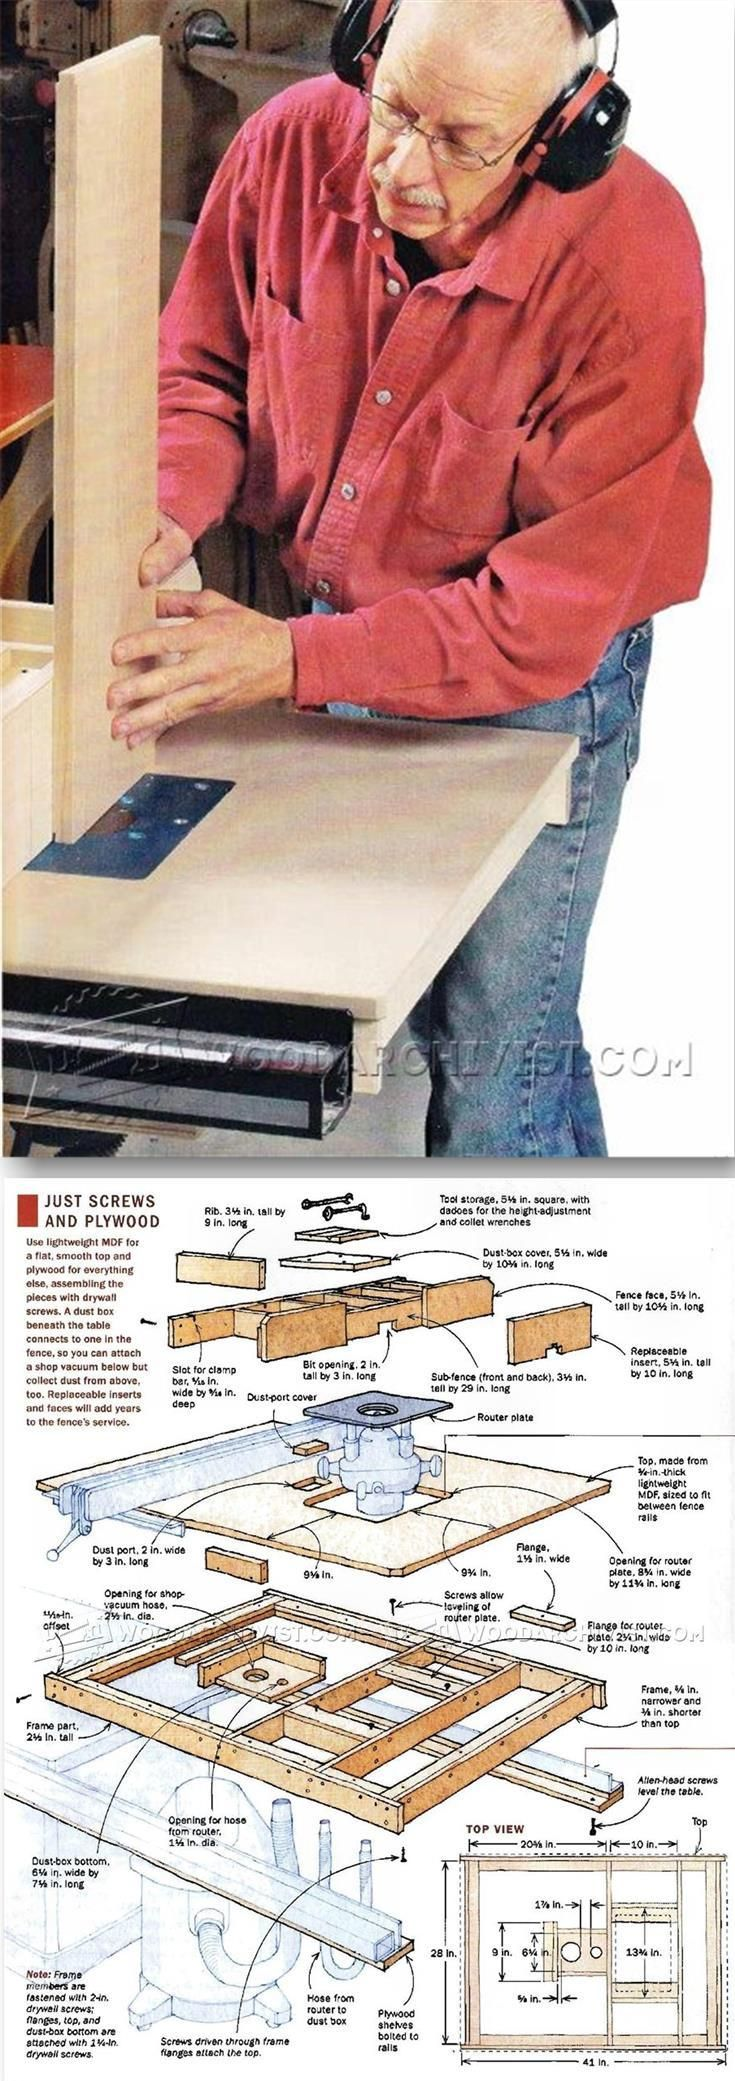 31 best videos herramientas images on pinterest tools woodworking table saw router table plans router tips jigs and fixtures woodarchivist greentooth Choice Image